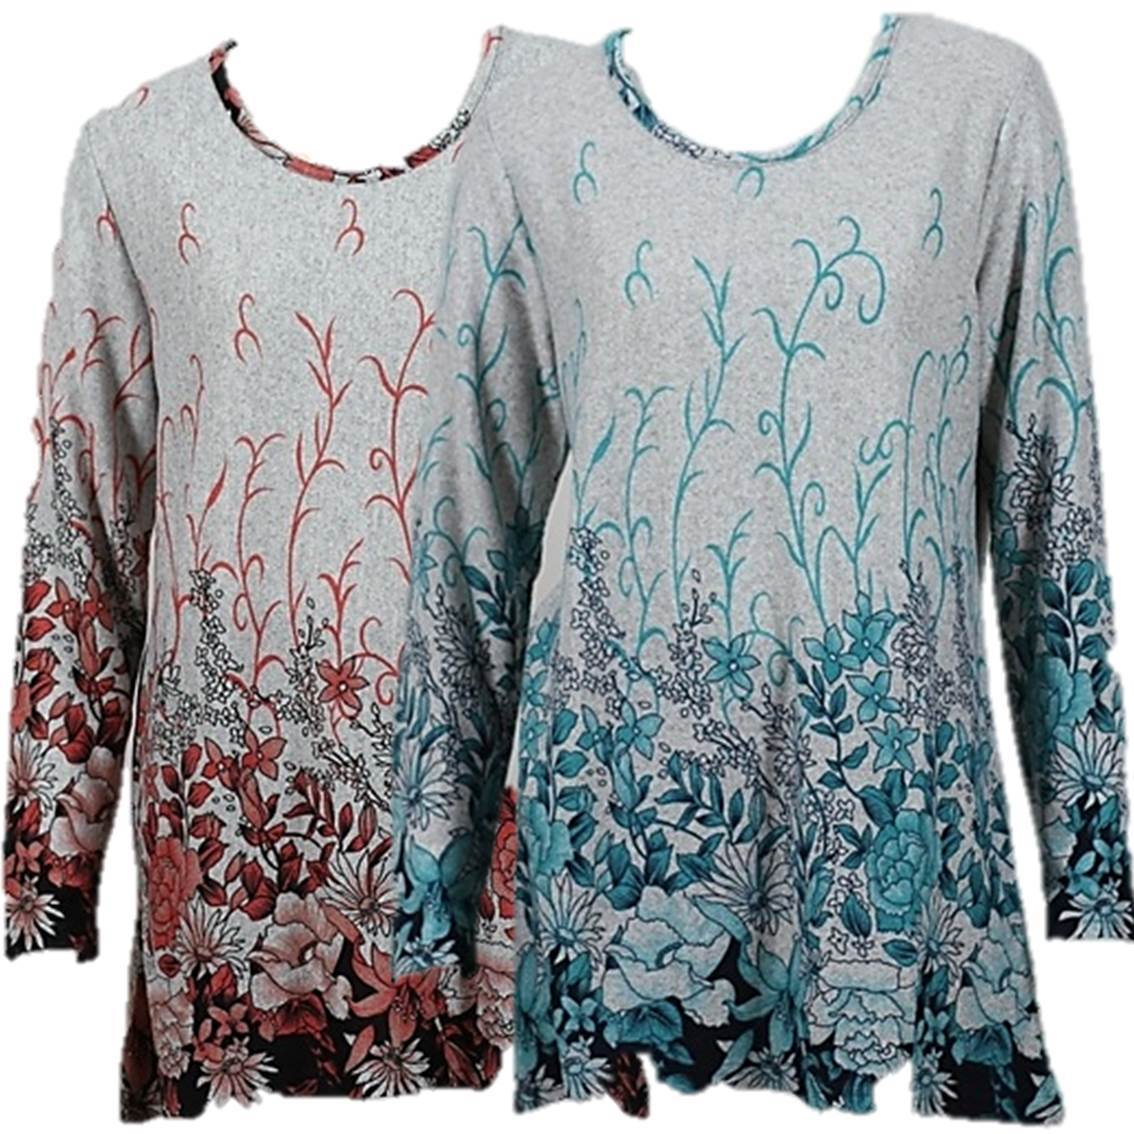 NEW Next Blue Floral Print Long Sleeve Top Blouse 10 12 14 16 18